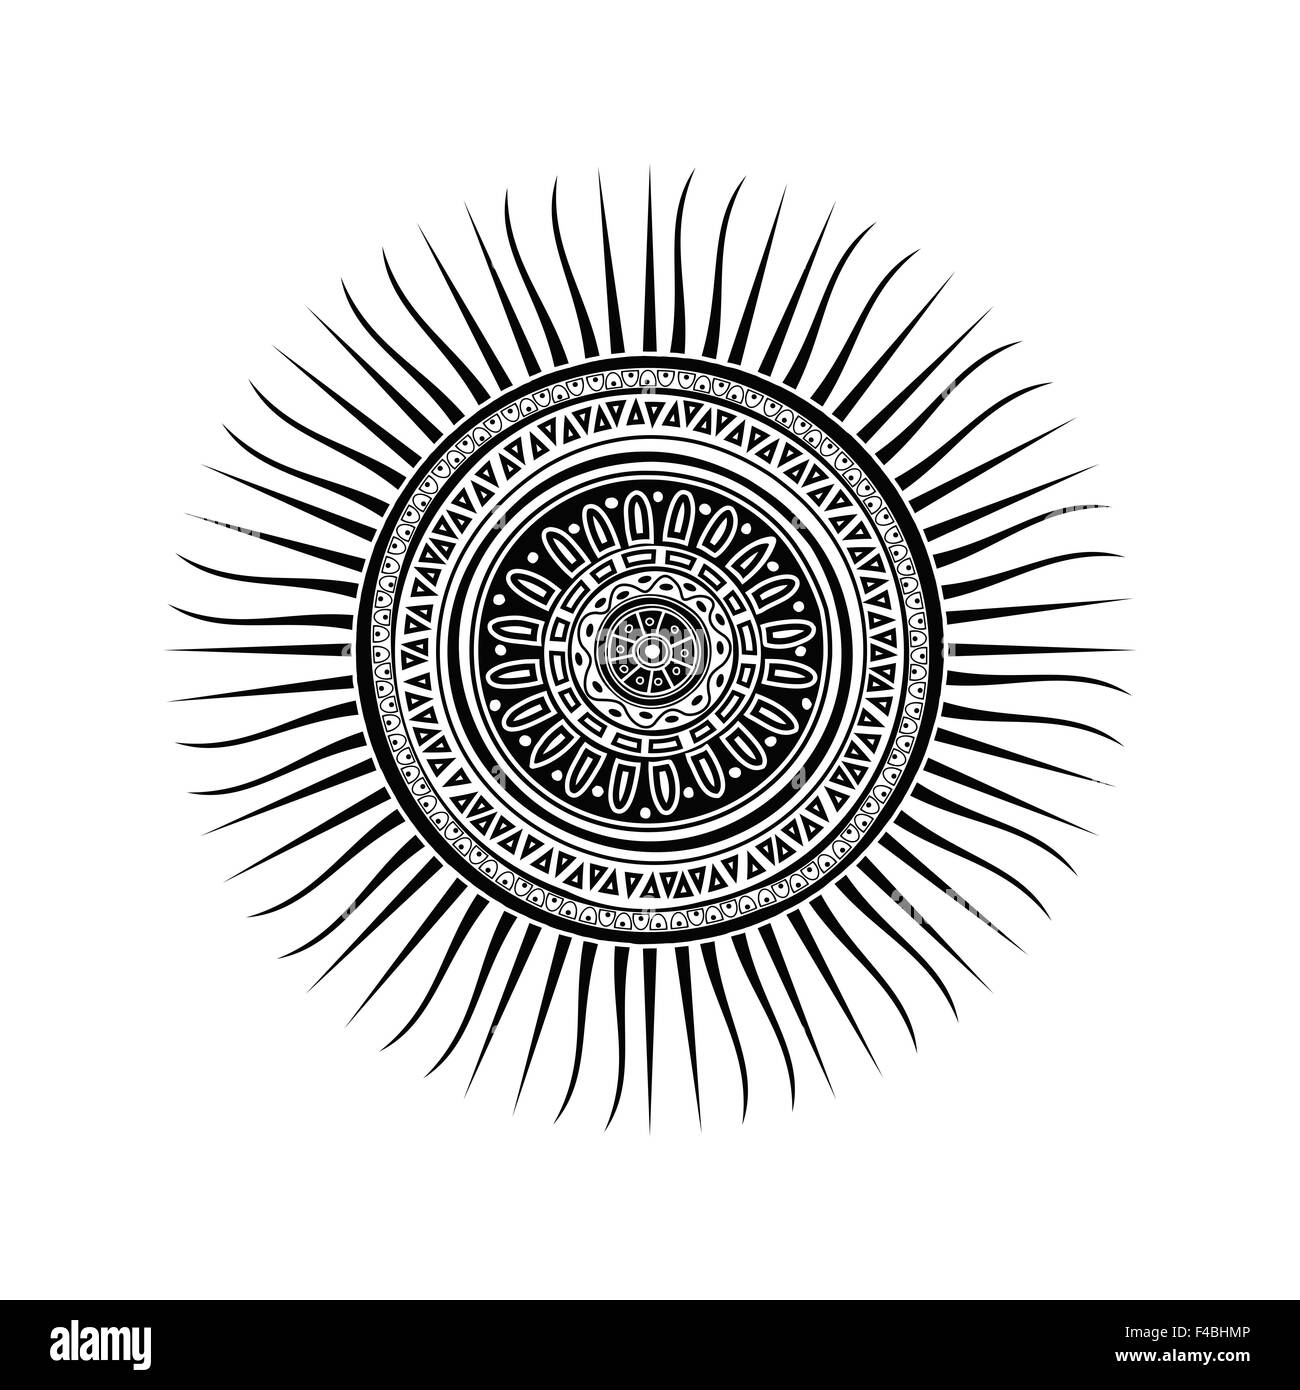 Mayan Sun Symbol Stock Photo 88765846 Alamy